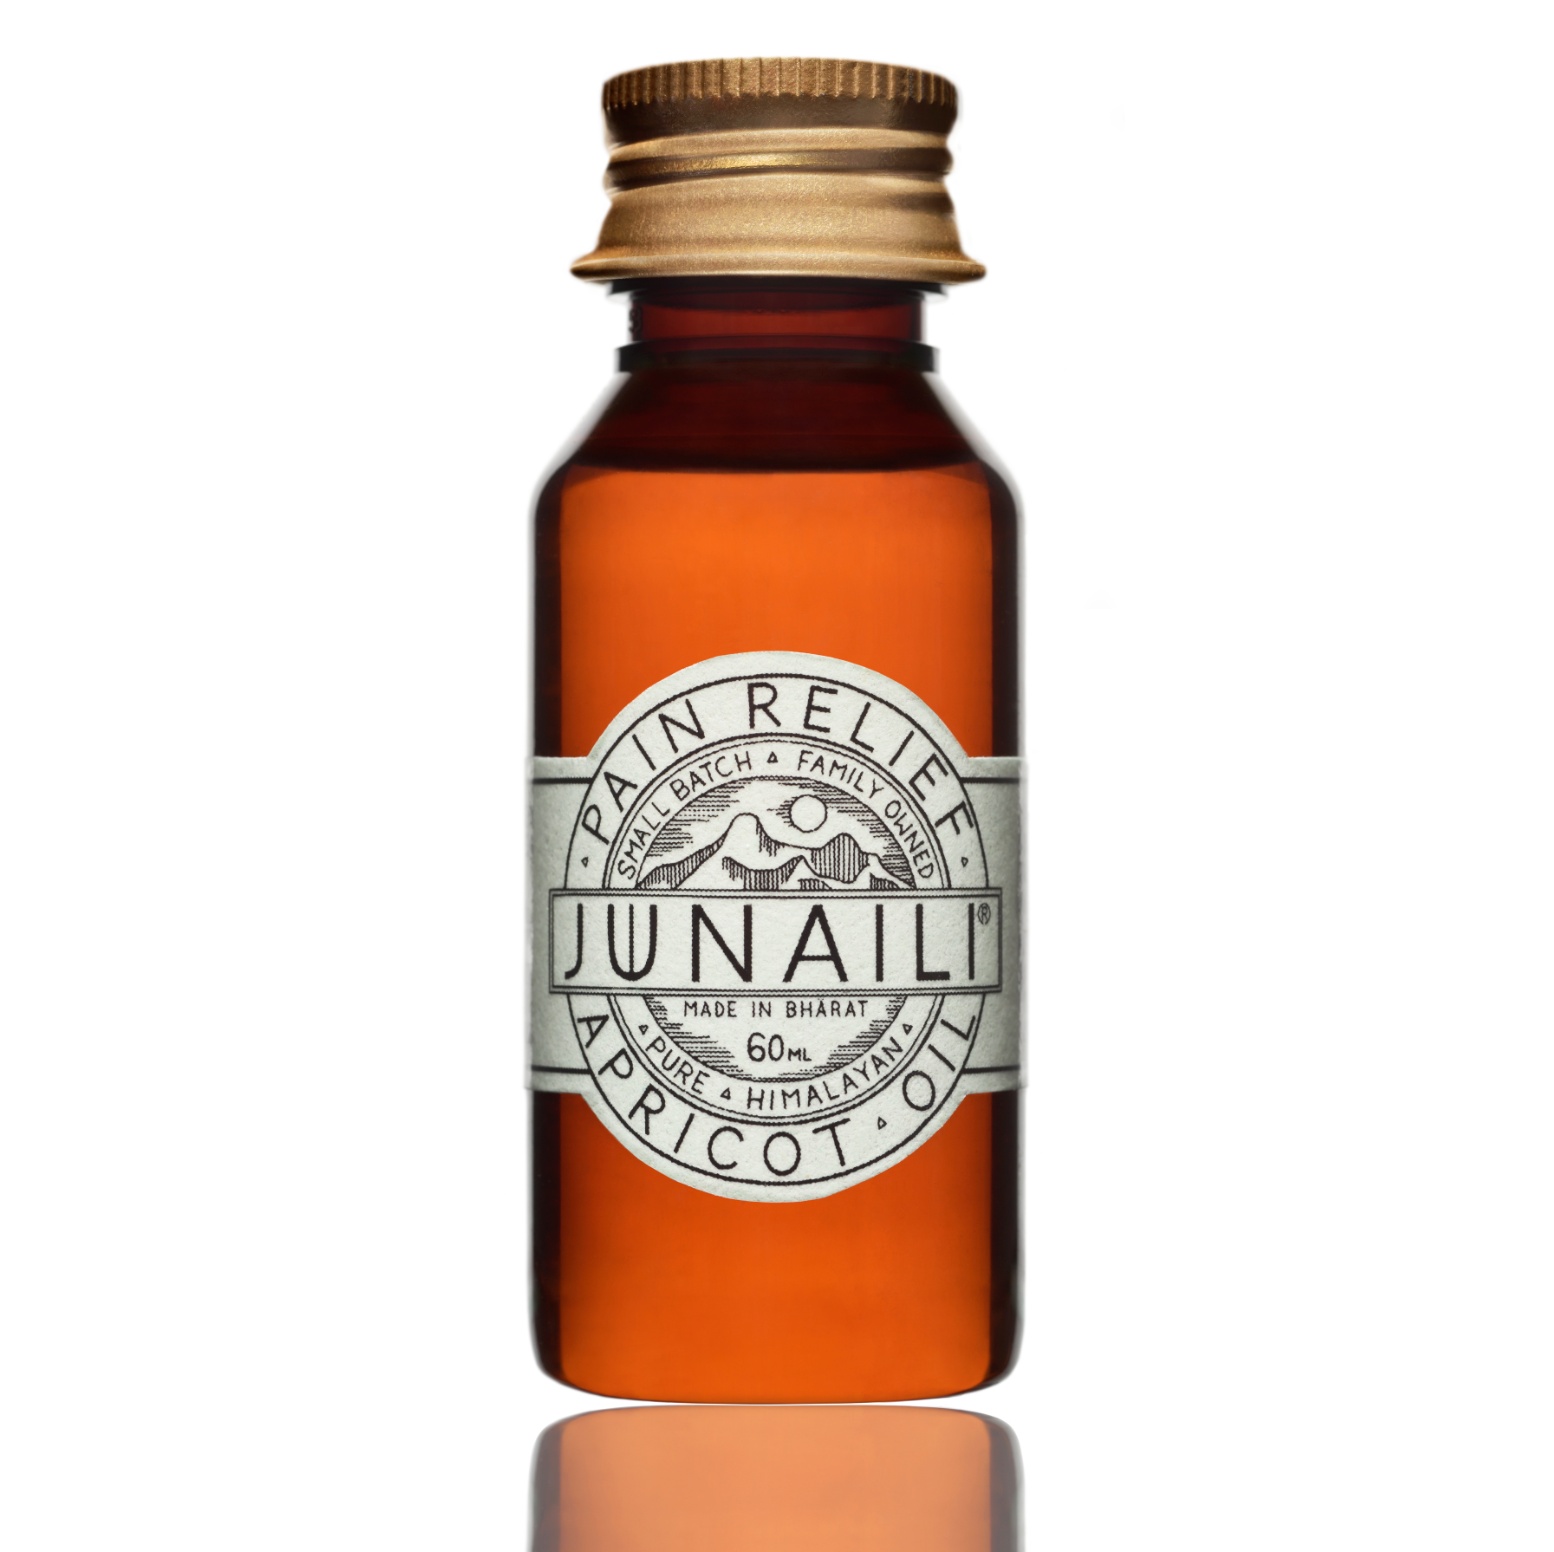 Junaili Pain Relief Apricot Oil 60 ml